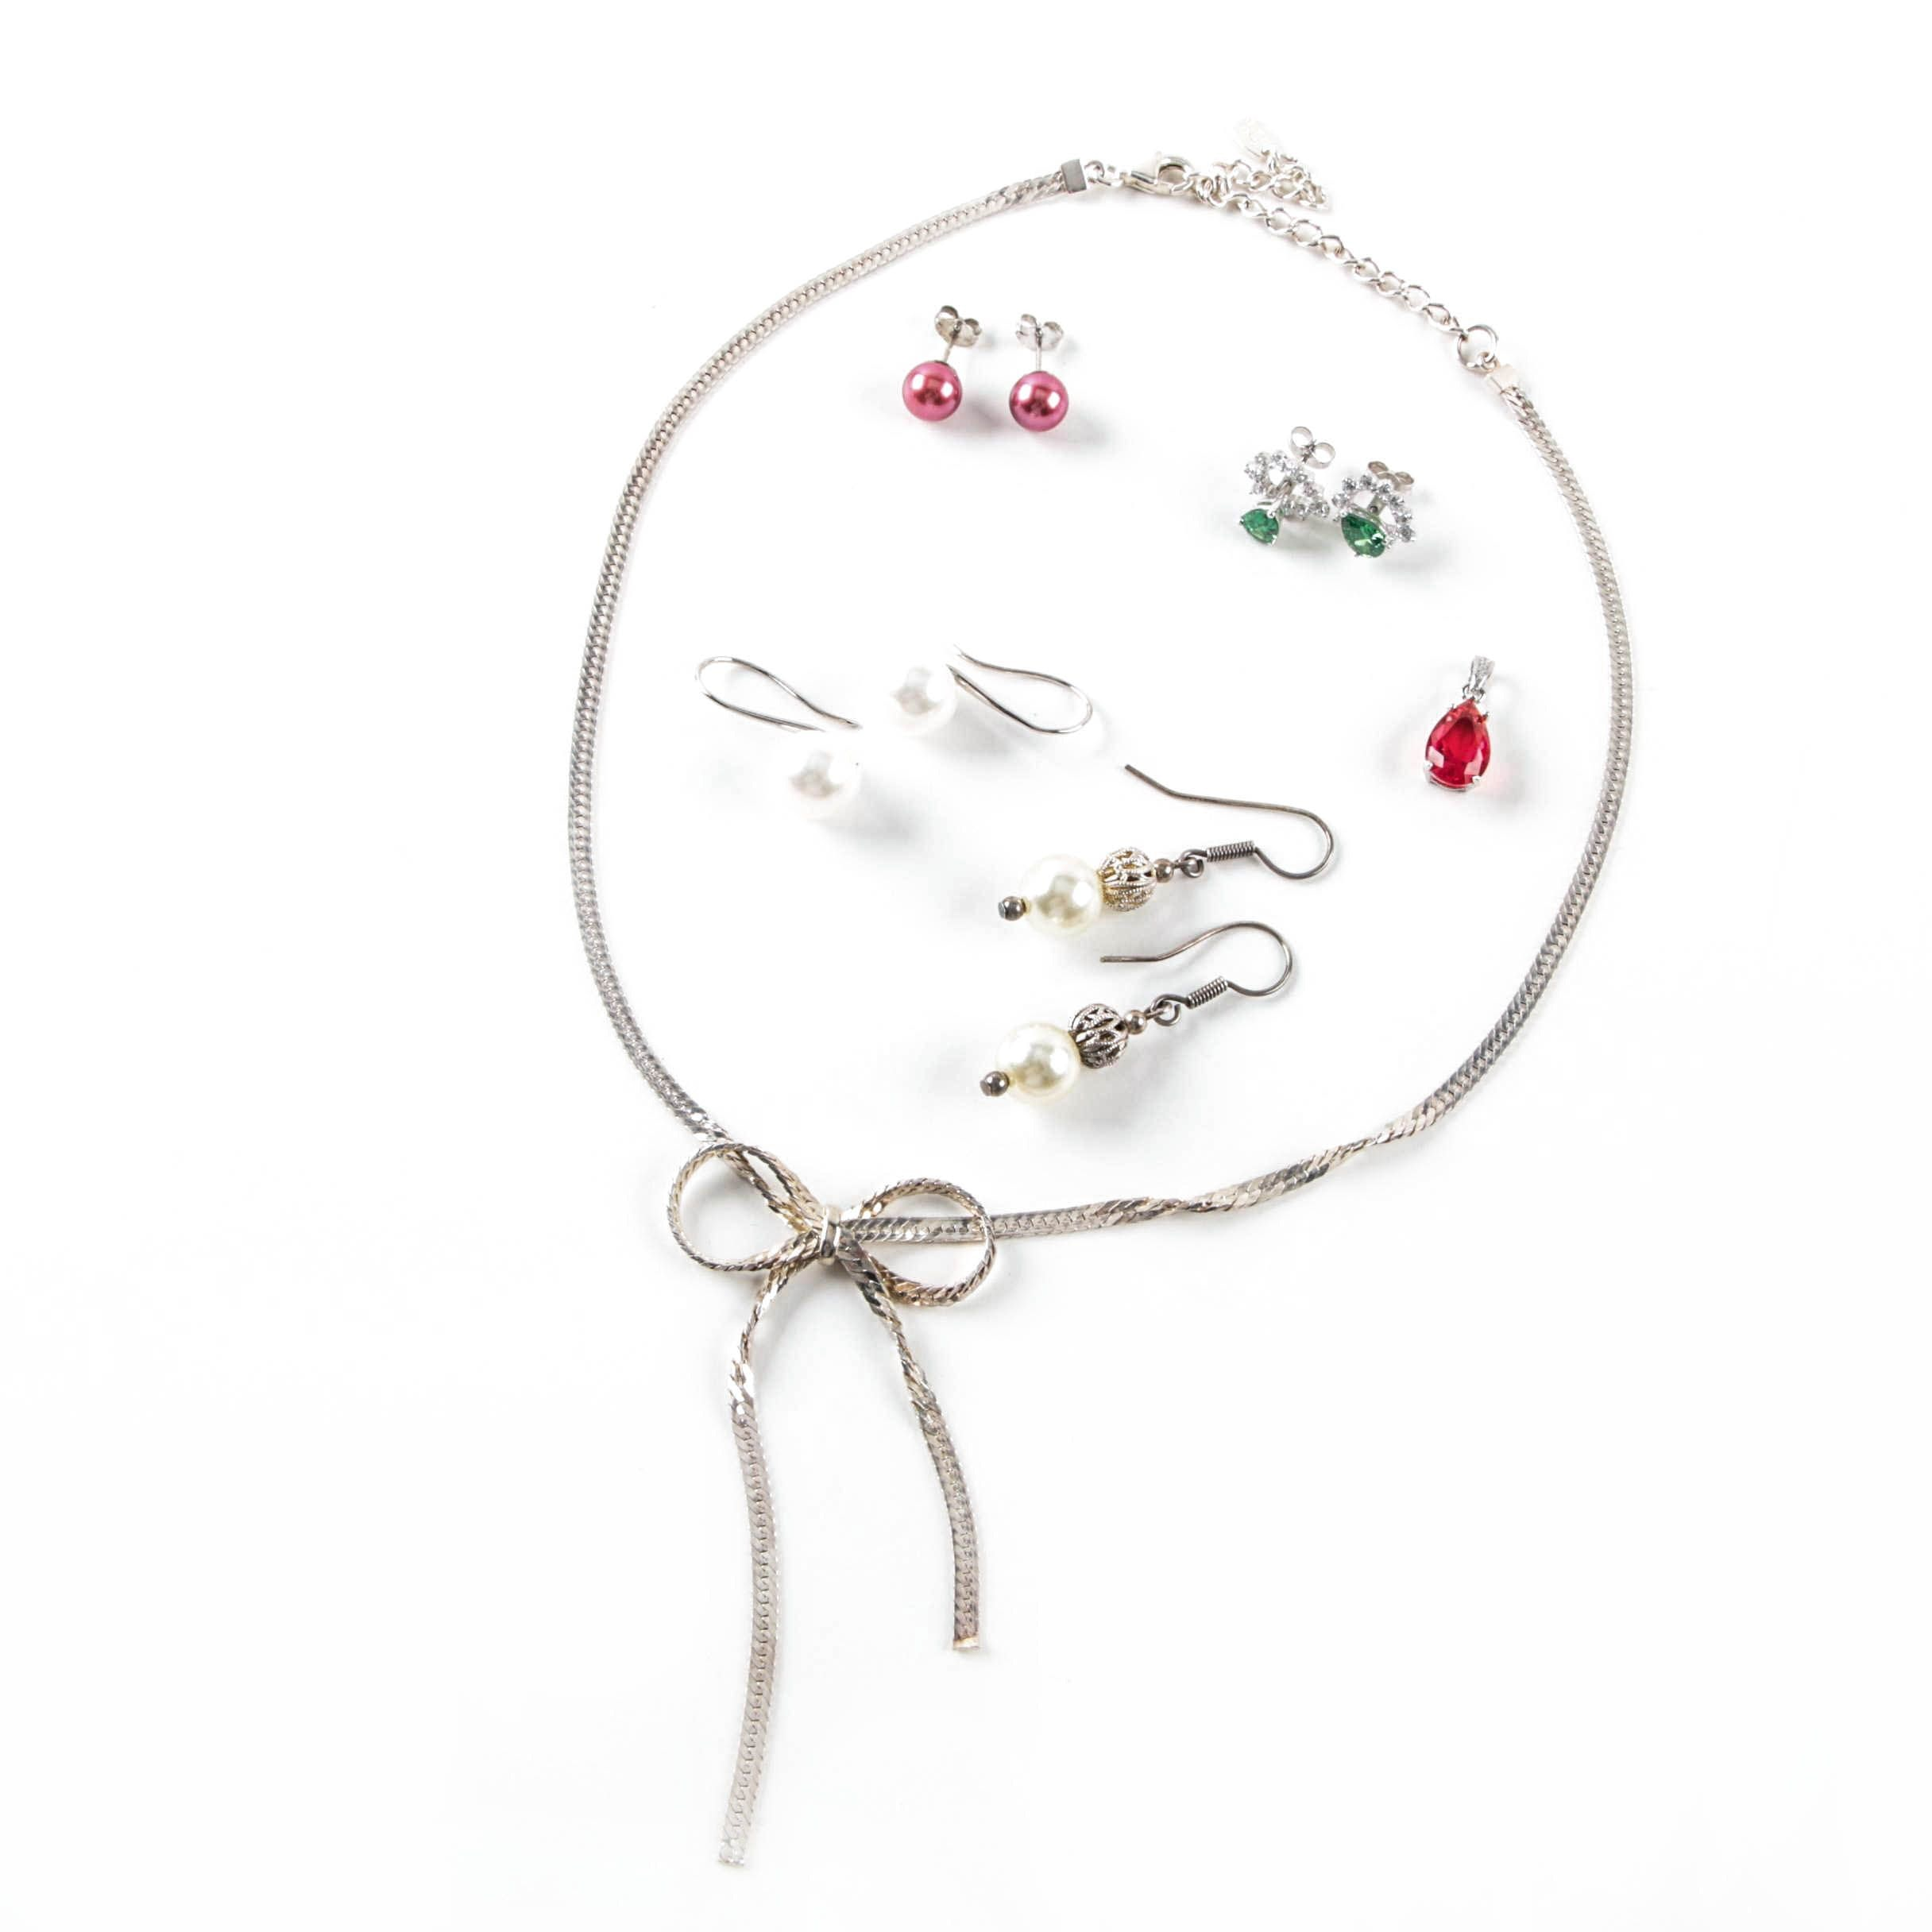 Selection of Sterling Silver Cultured Pearl, Imitation Pearl and Glass Jewelry